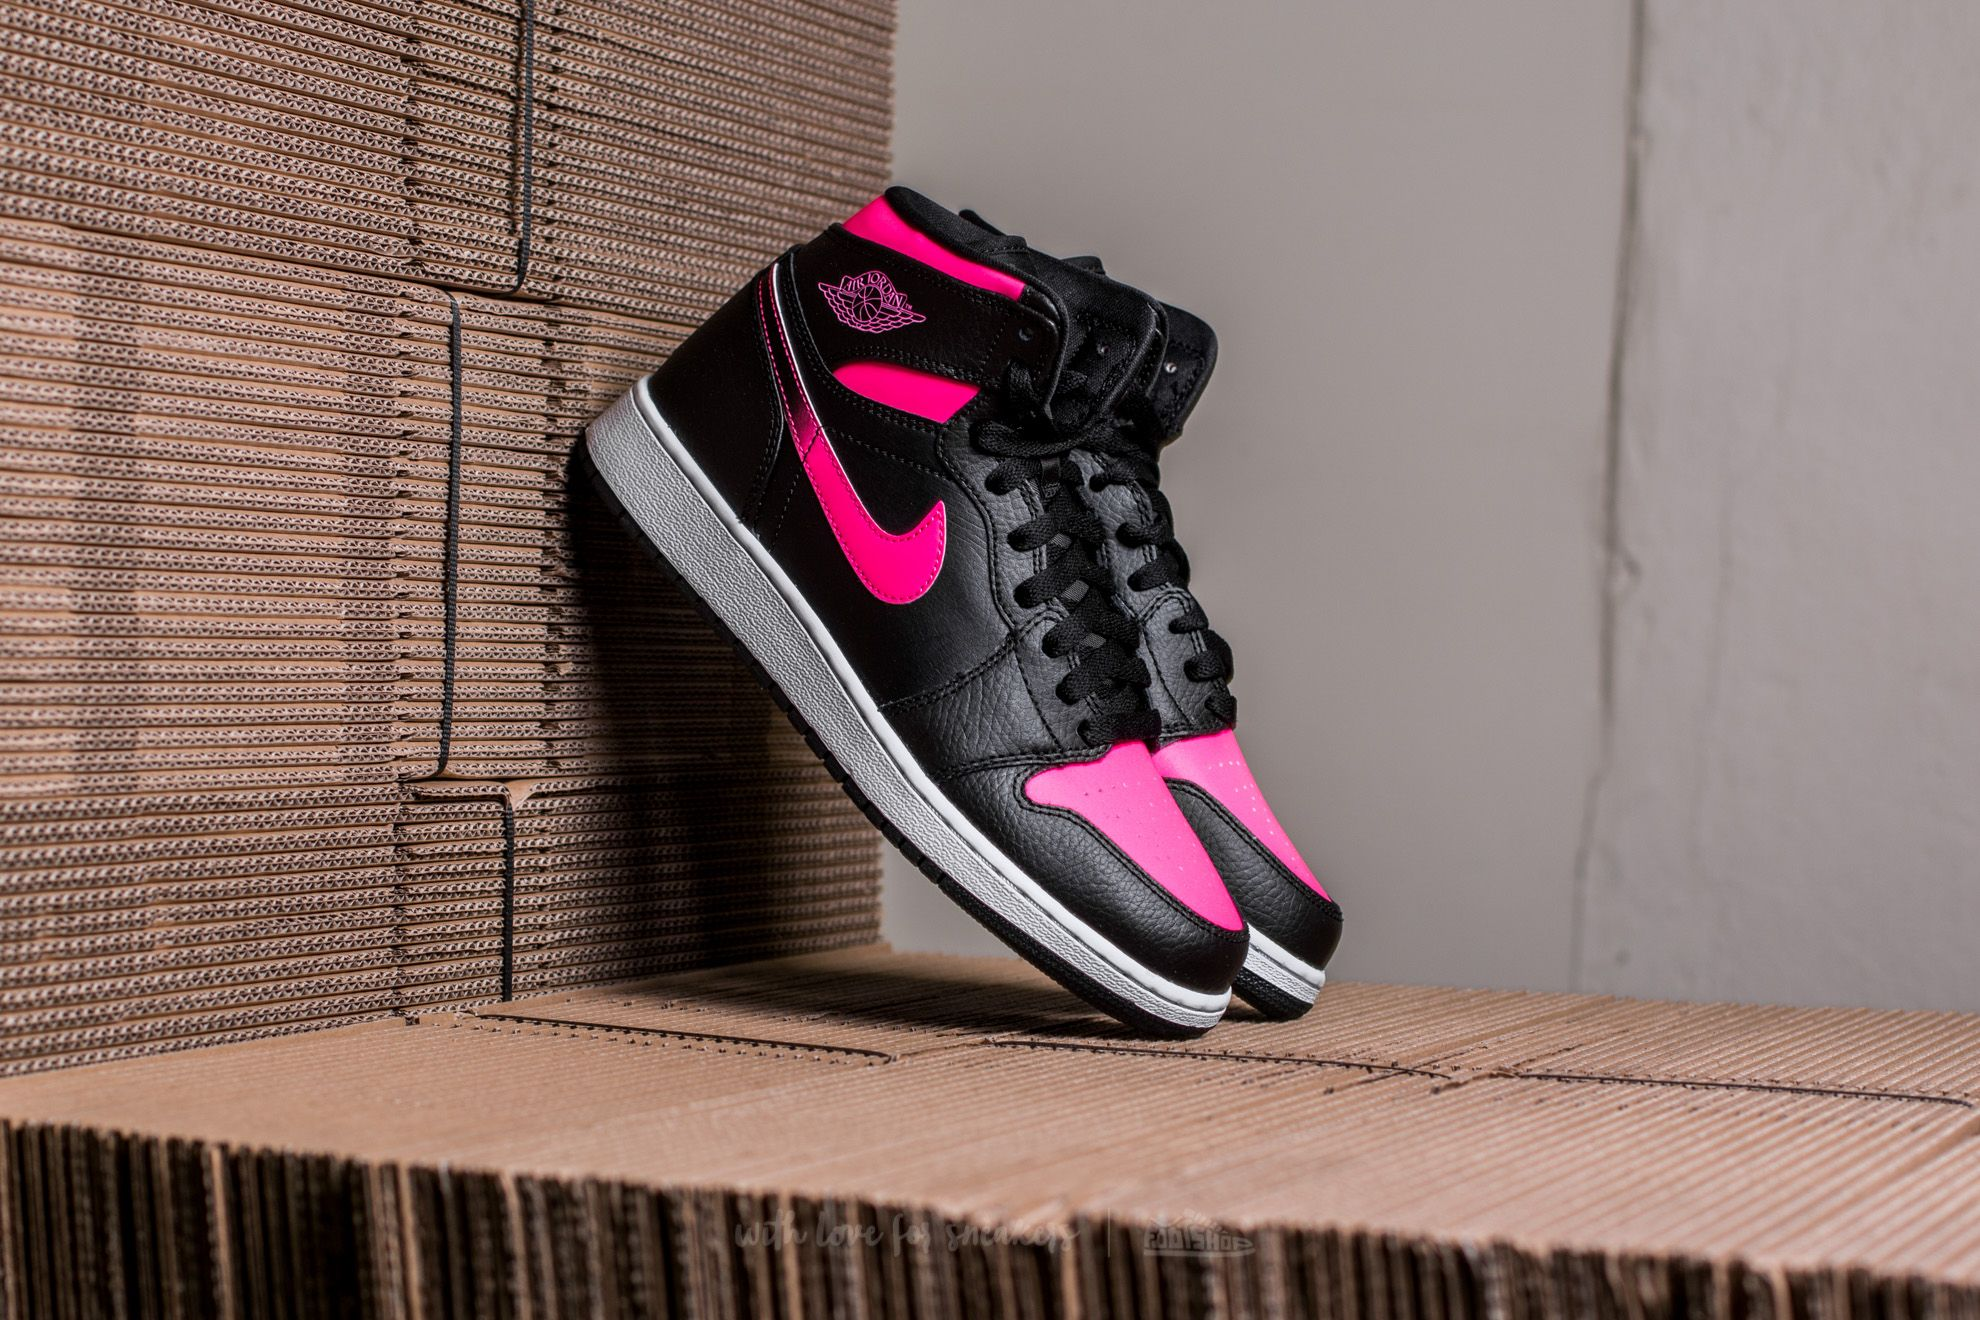 Air Jordan 1 Retro High GG Black/ Black-Hyper Pink-White